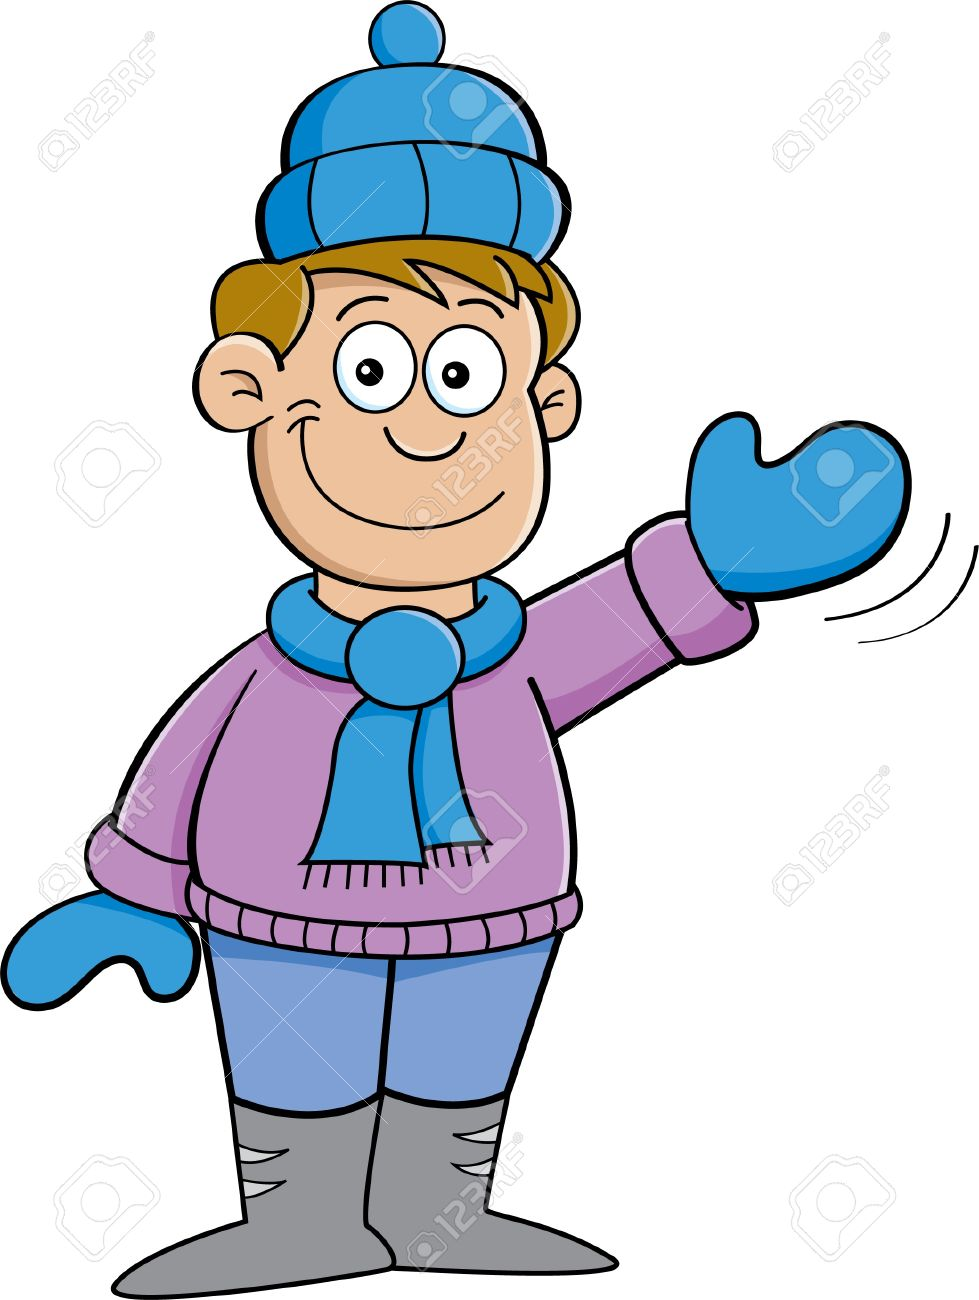 Winter clipart snowsuit Of Boy Illustration collection A